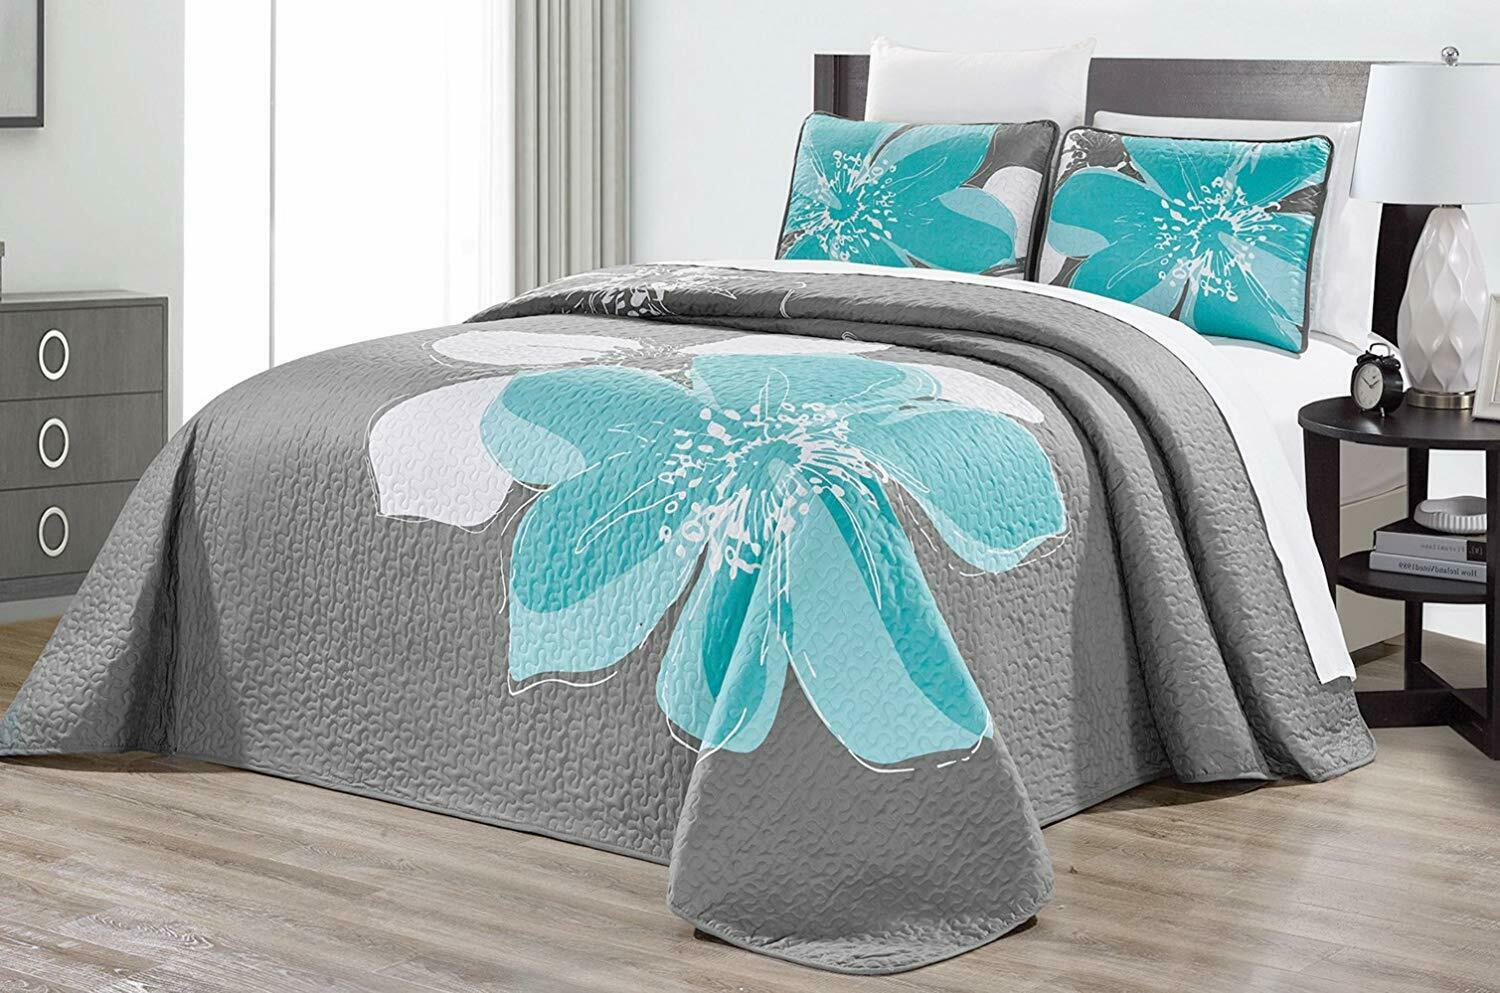 Picture of: Turquoise Blue White Grey Orange 2 Piece Fine Printed Quilt Set Reversible Bedspread Coverlet Twin Size Bed Cover Imprezowedekoracje Pl